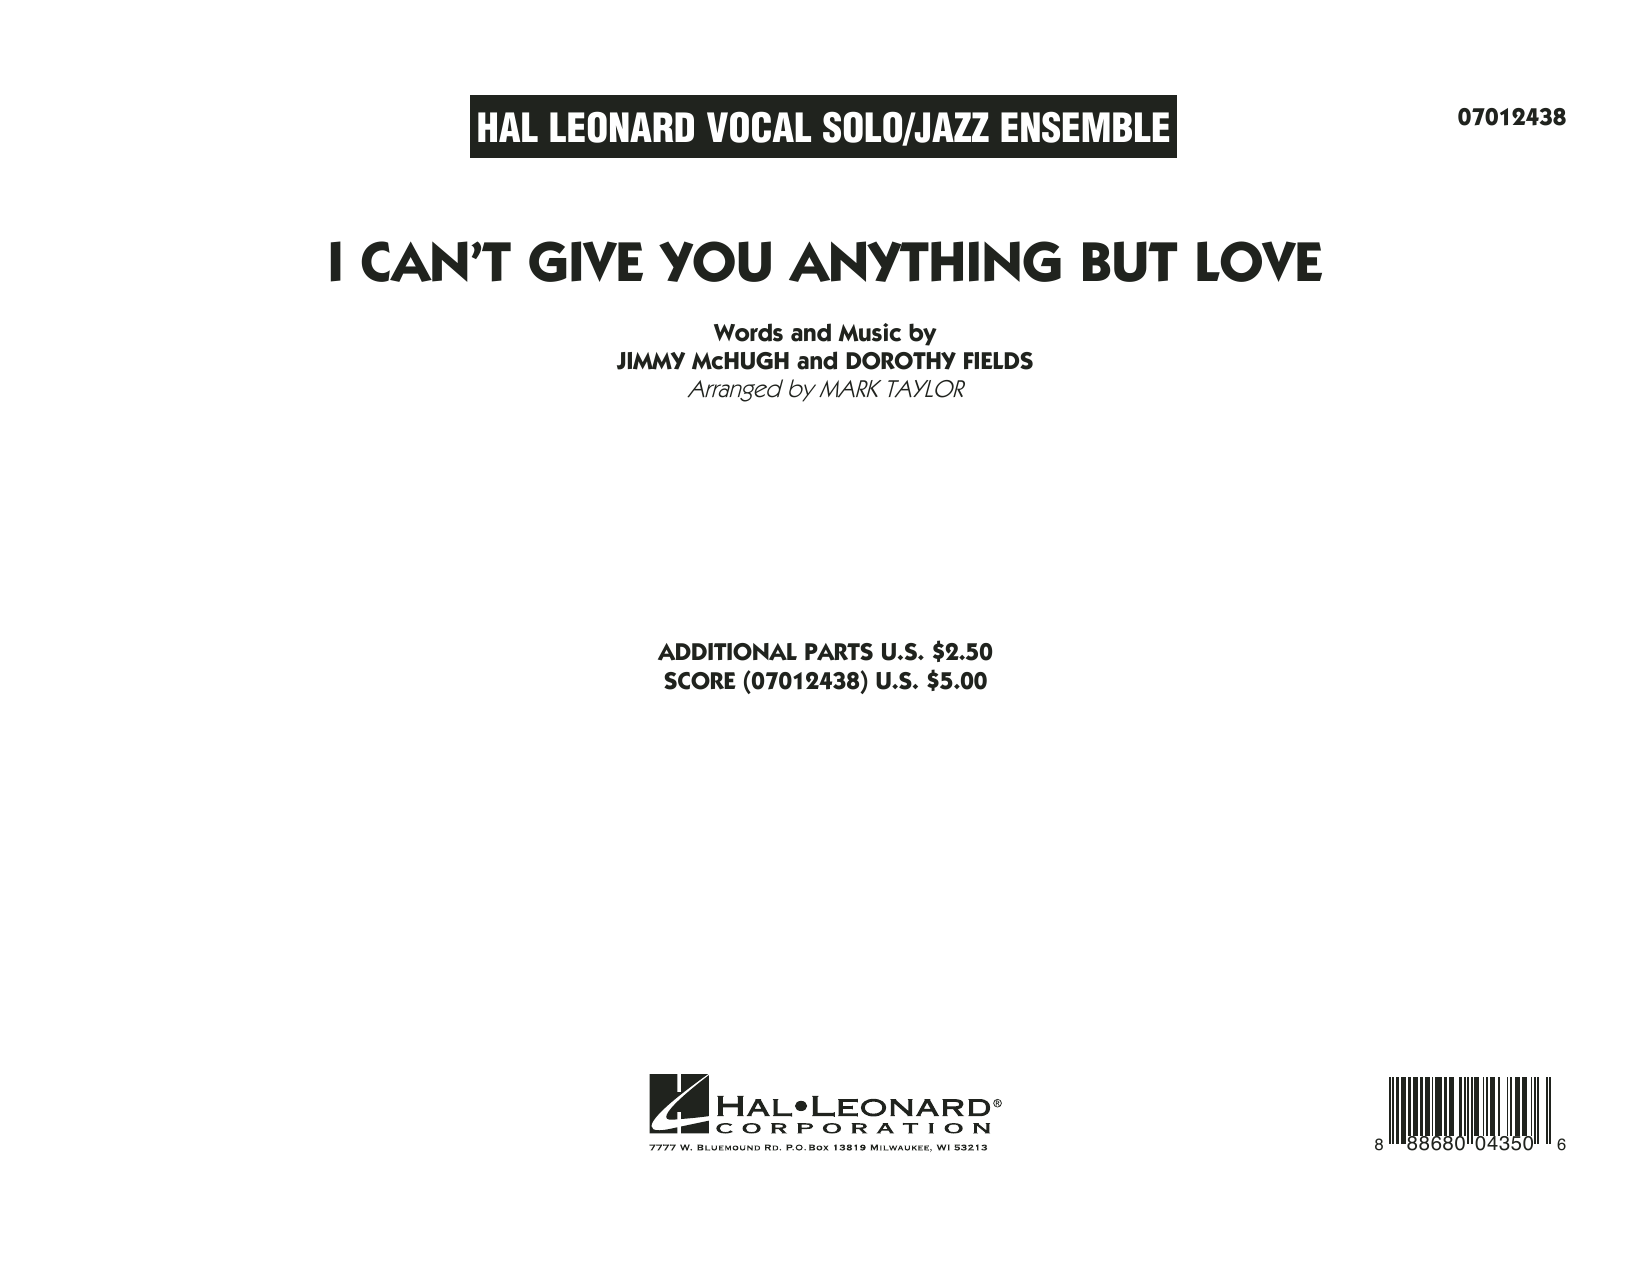 I Can't Give You Anything But Love (Key: B-flat) - Conductor Score (Full Score) sheet music